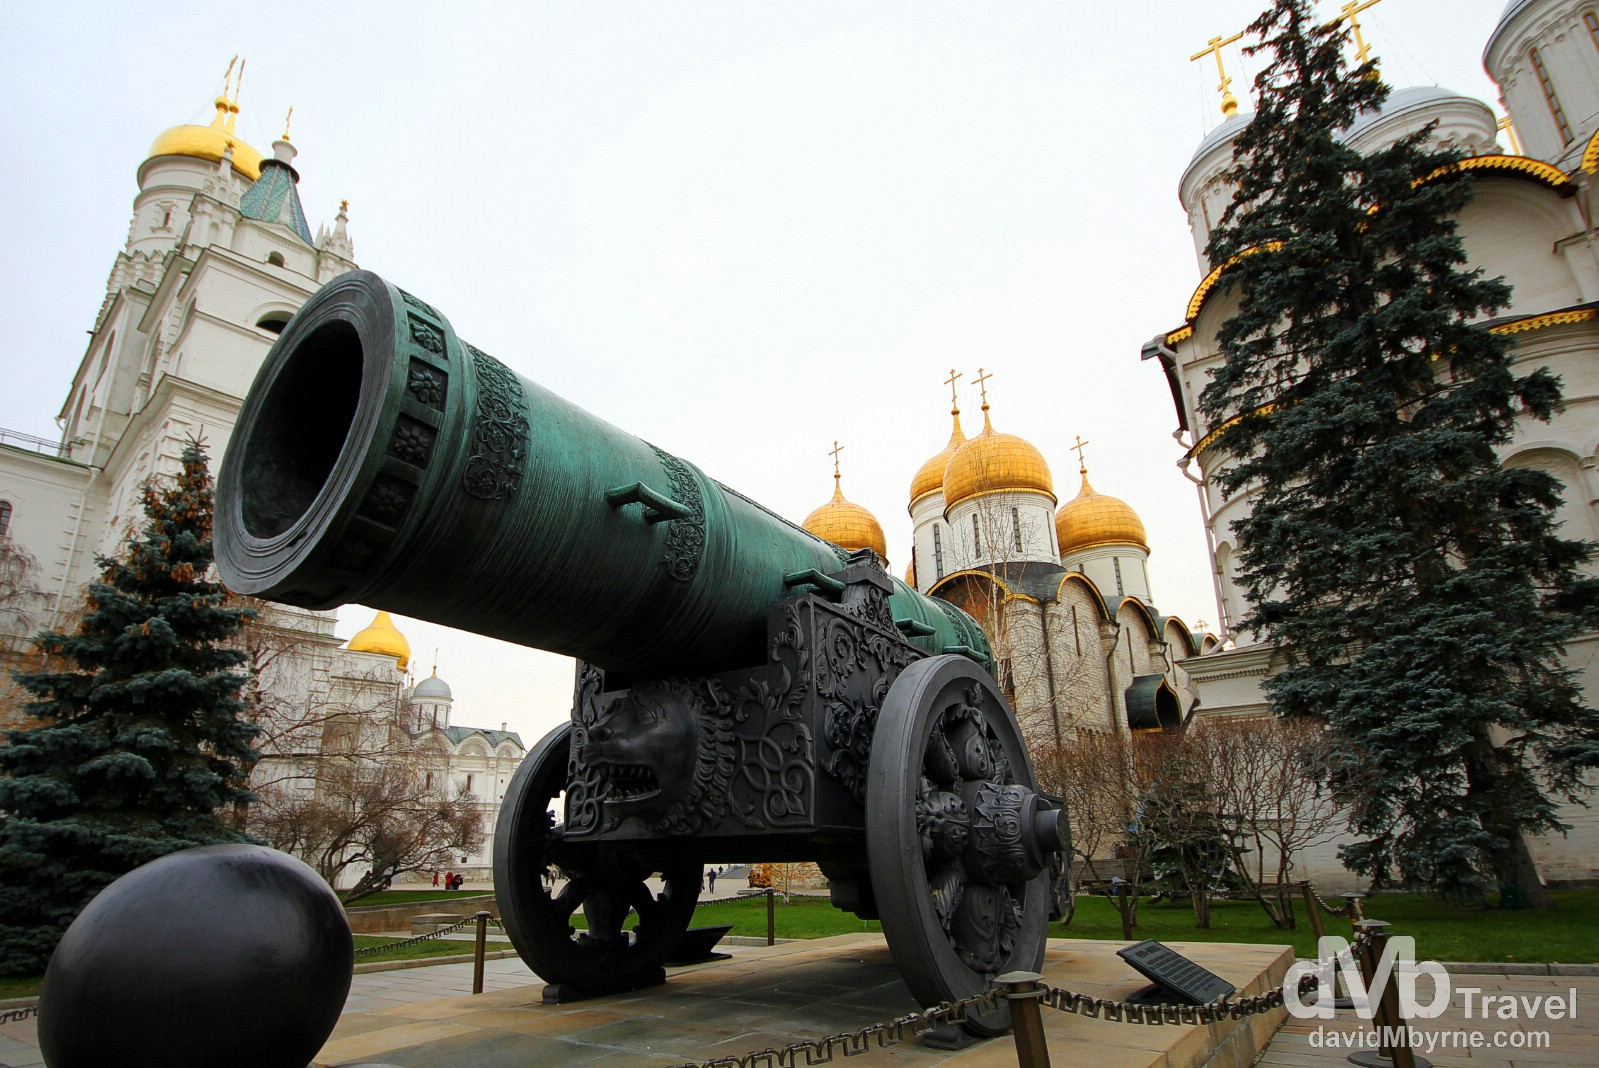 The Tsar Cannon in the grounds of The Kremlin in Moscow, Russia. November 19th 2012.